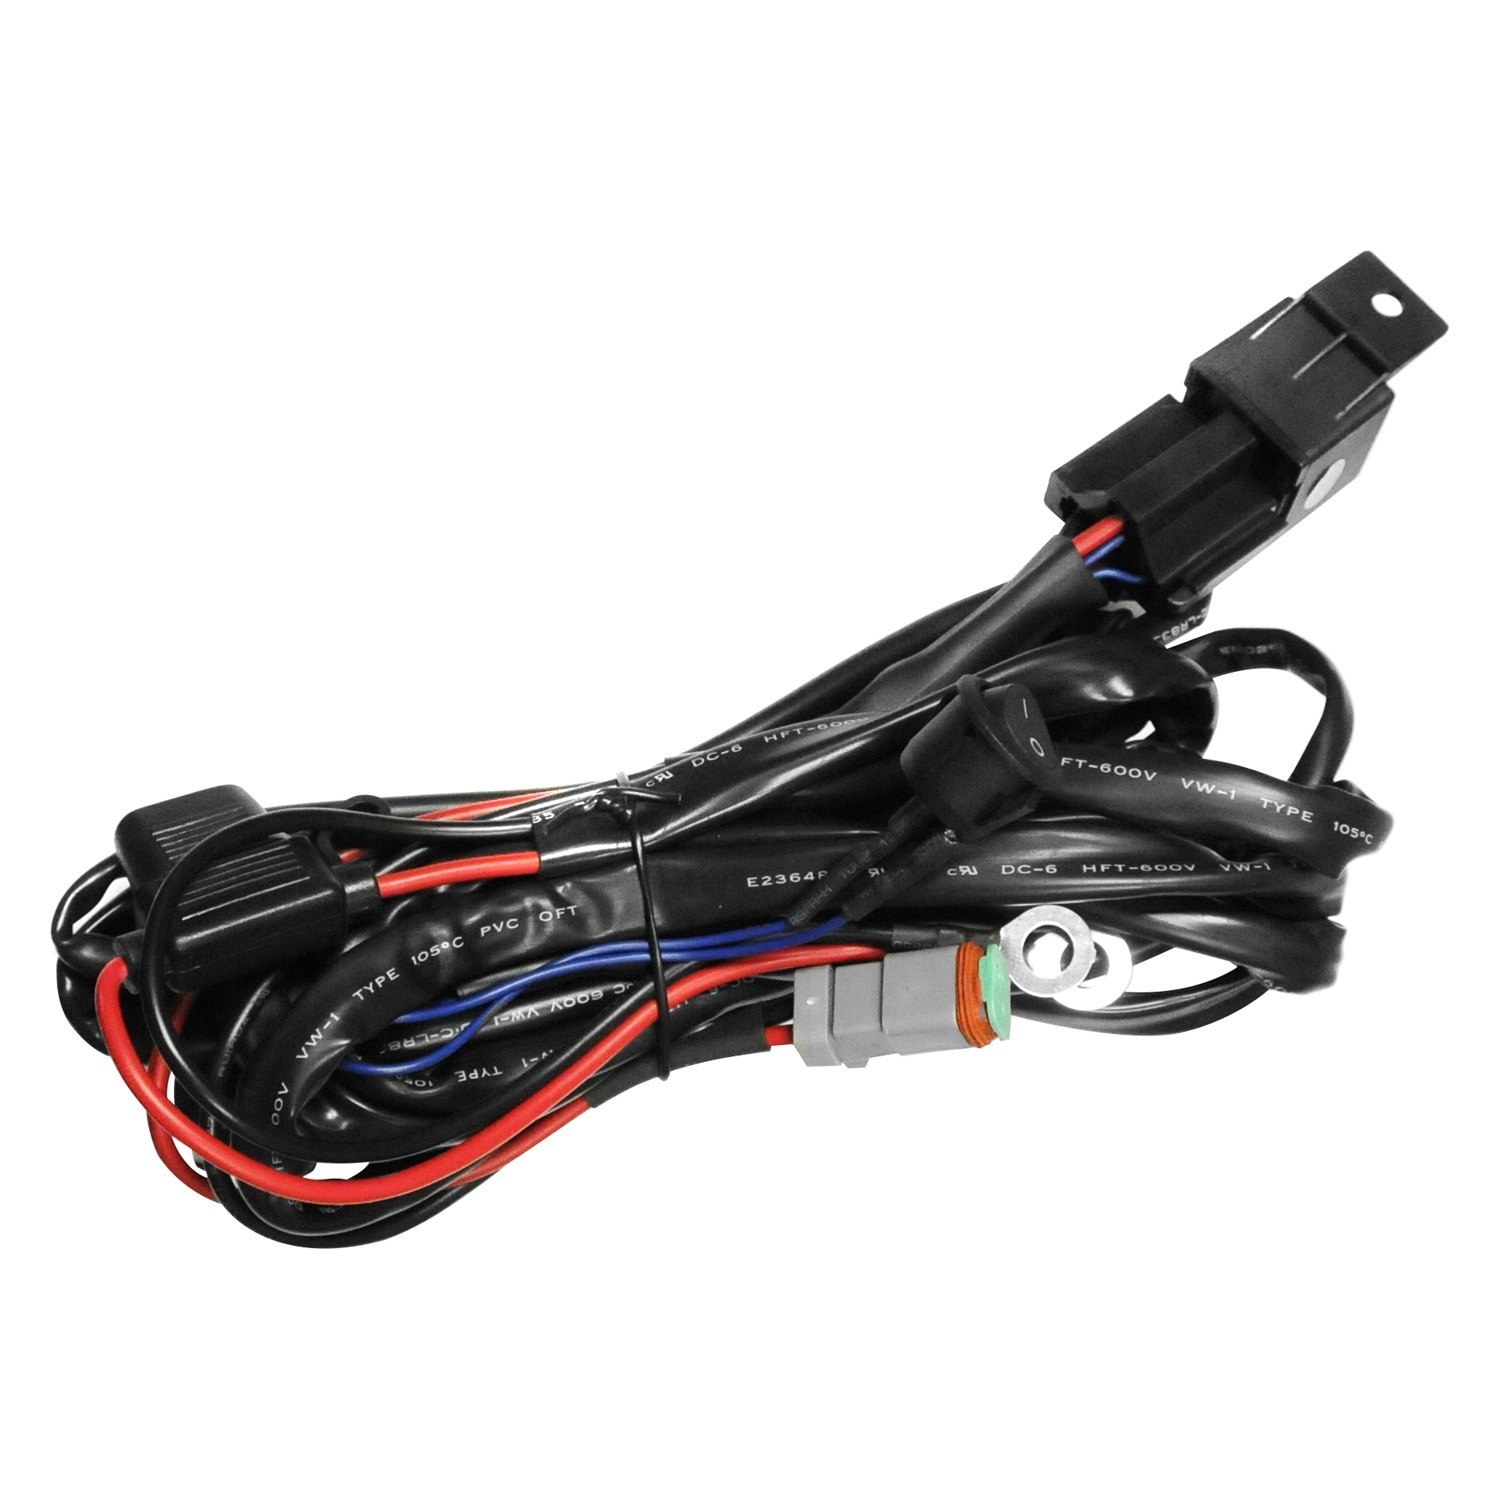 zroadz z390020d a wiring harness for dual leds with 200 w. Black Bedroom Furniture Sets. Home Design Ideas